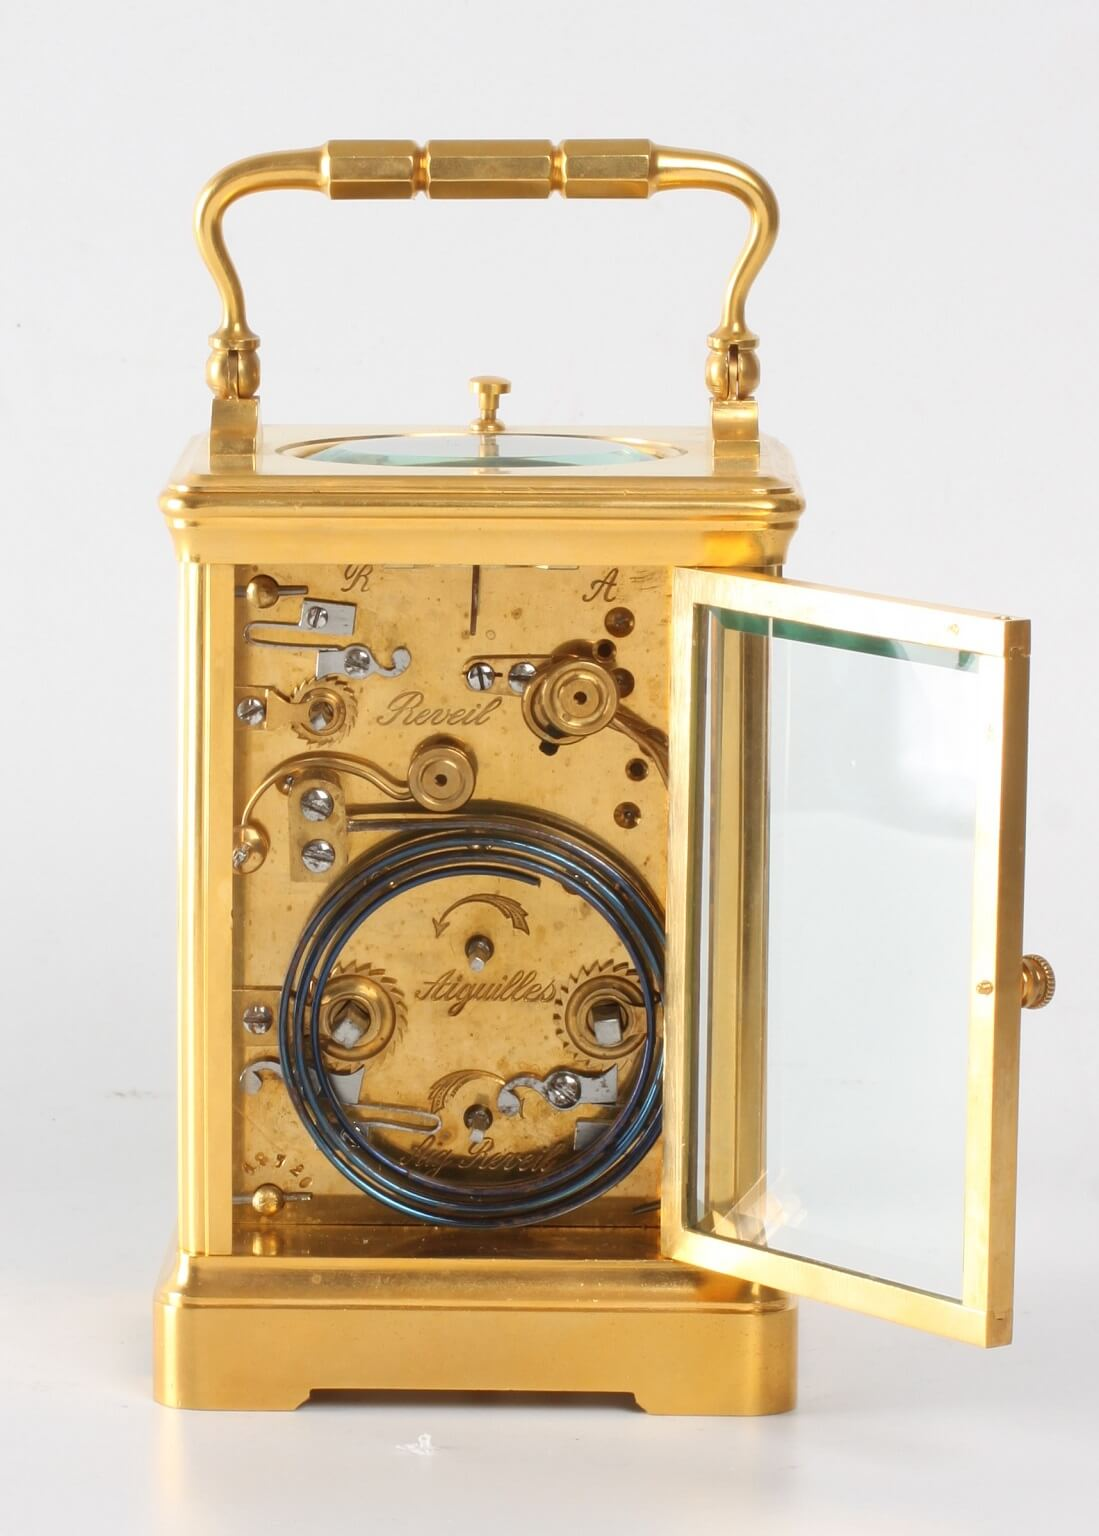 Frenchgilt Quarter Striking Corniche Carriage Clock 1880